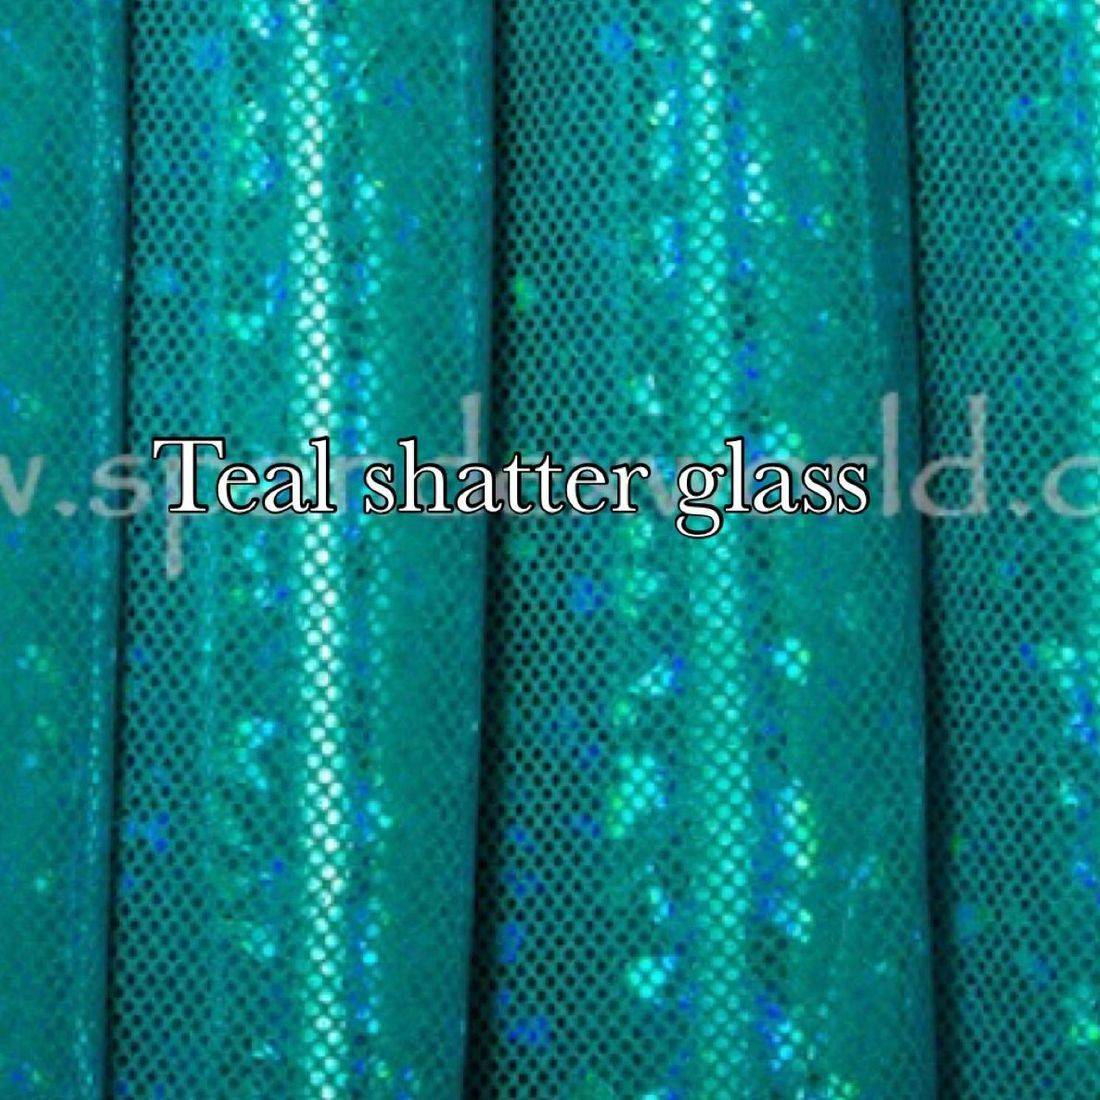 Teal shattered glass